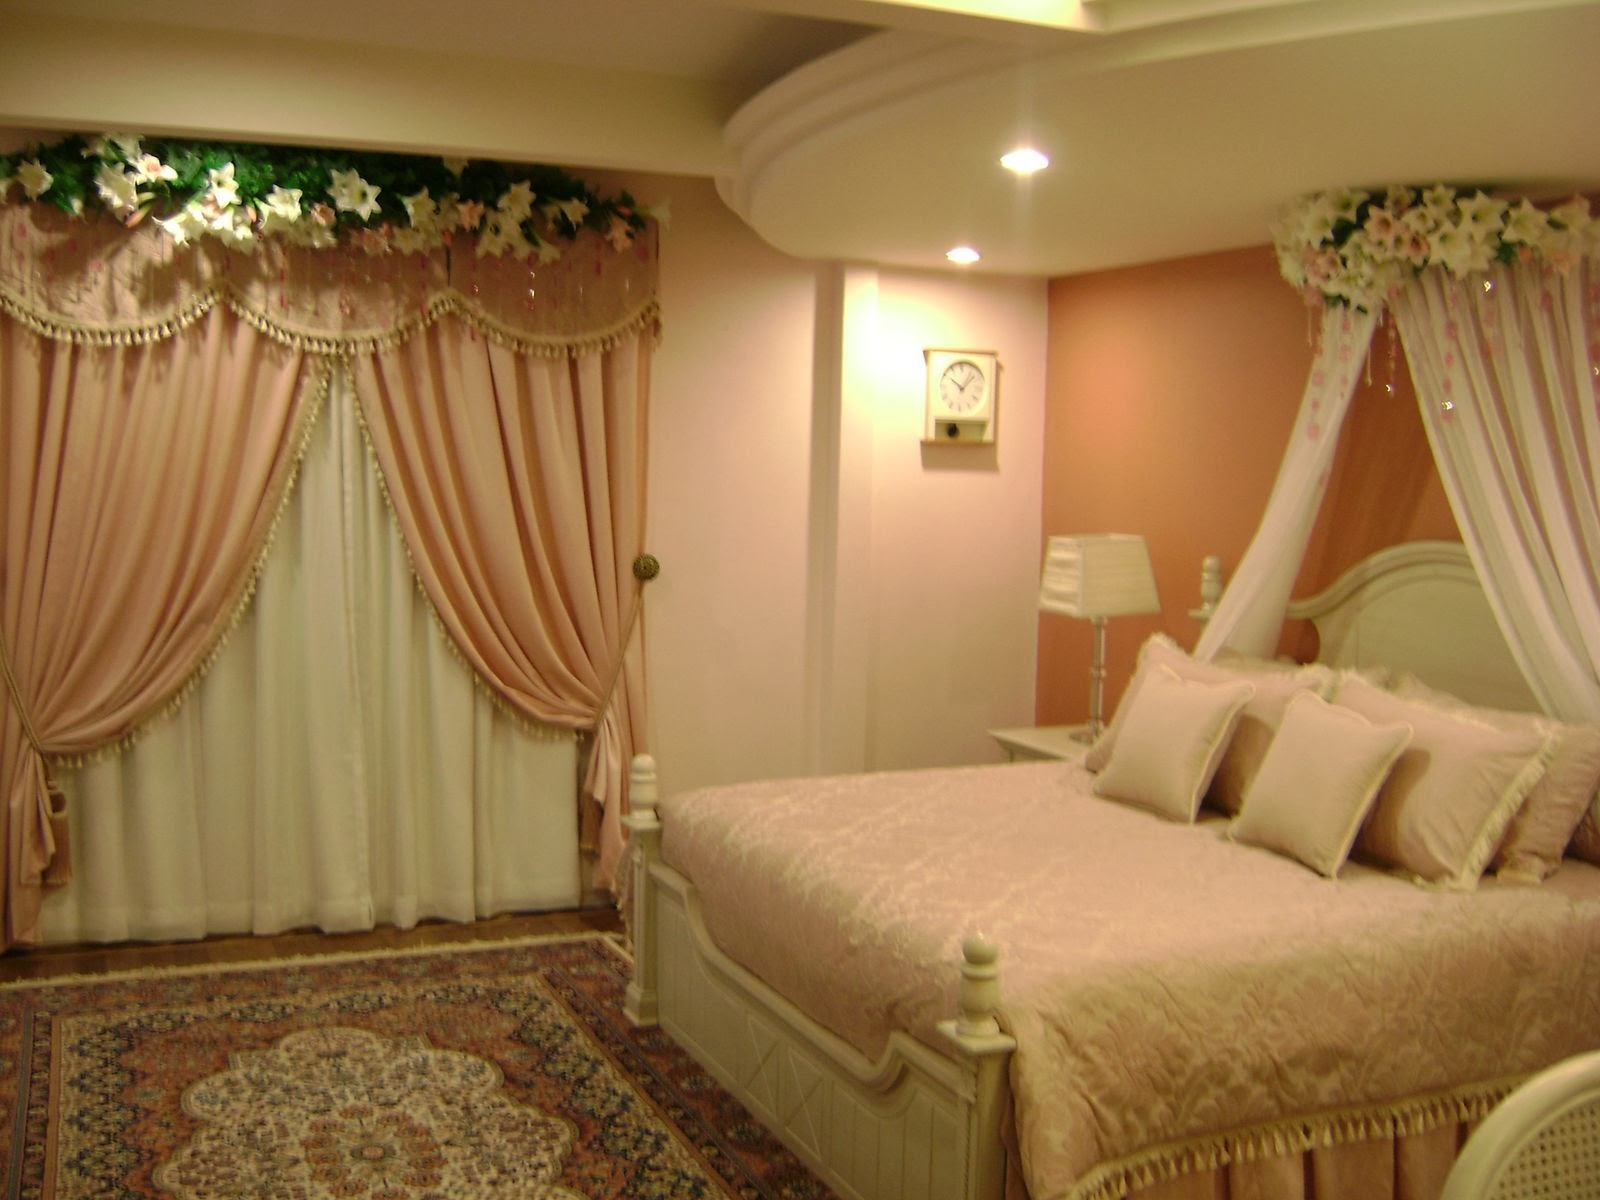 Michelle clunie how will decorate to bedroom for groom for Bedroom designs normal